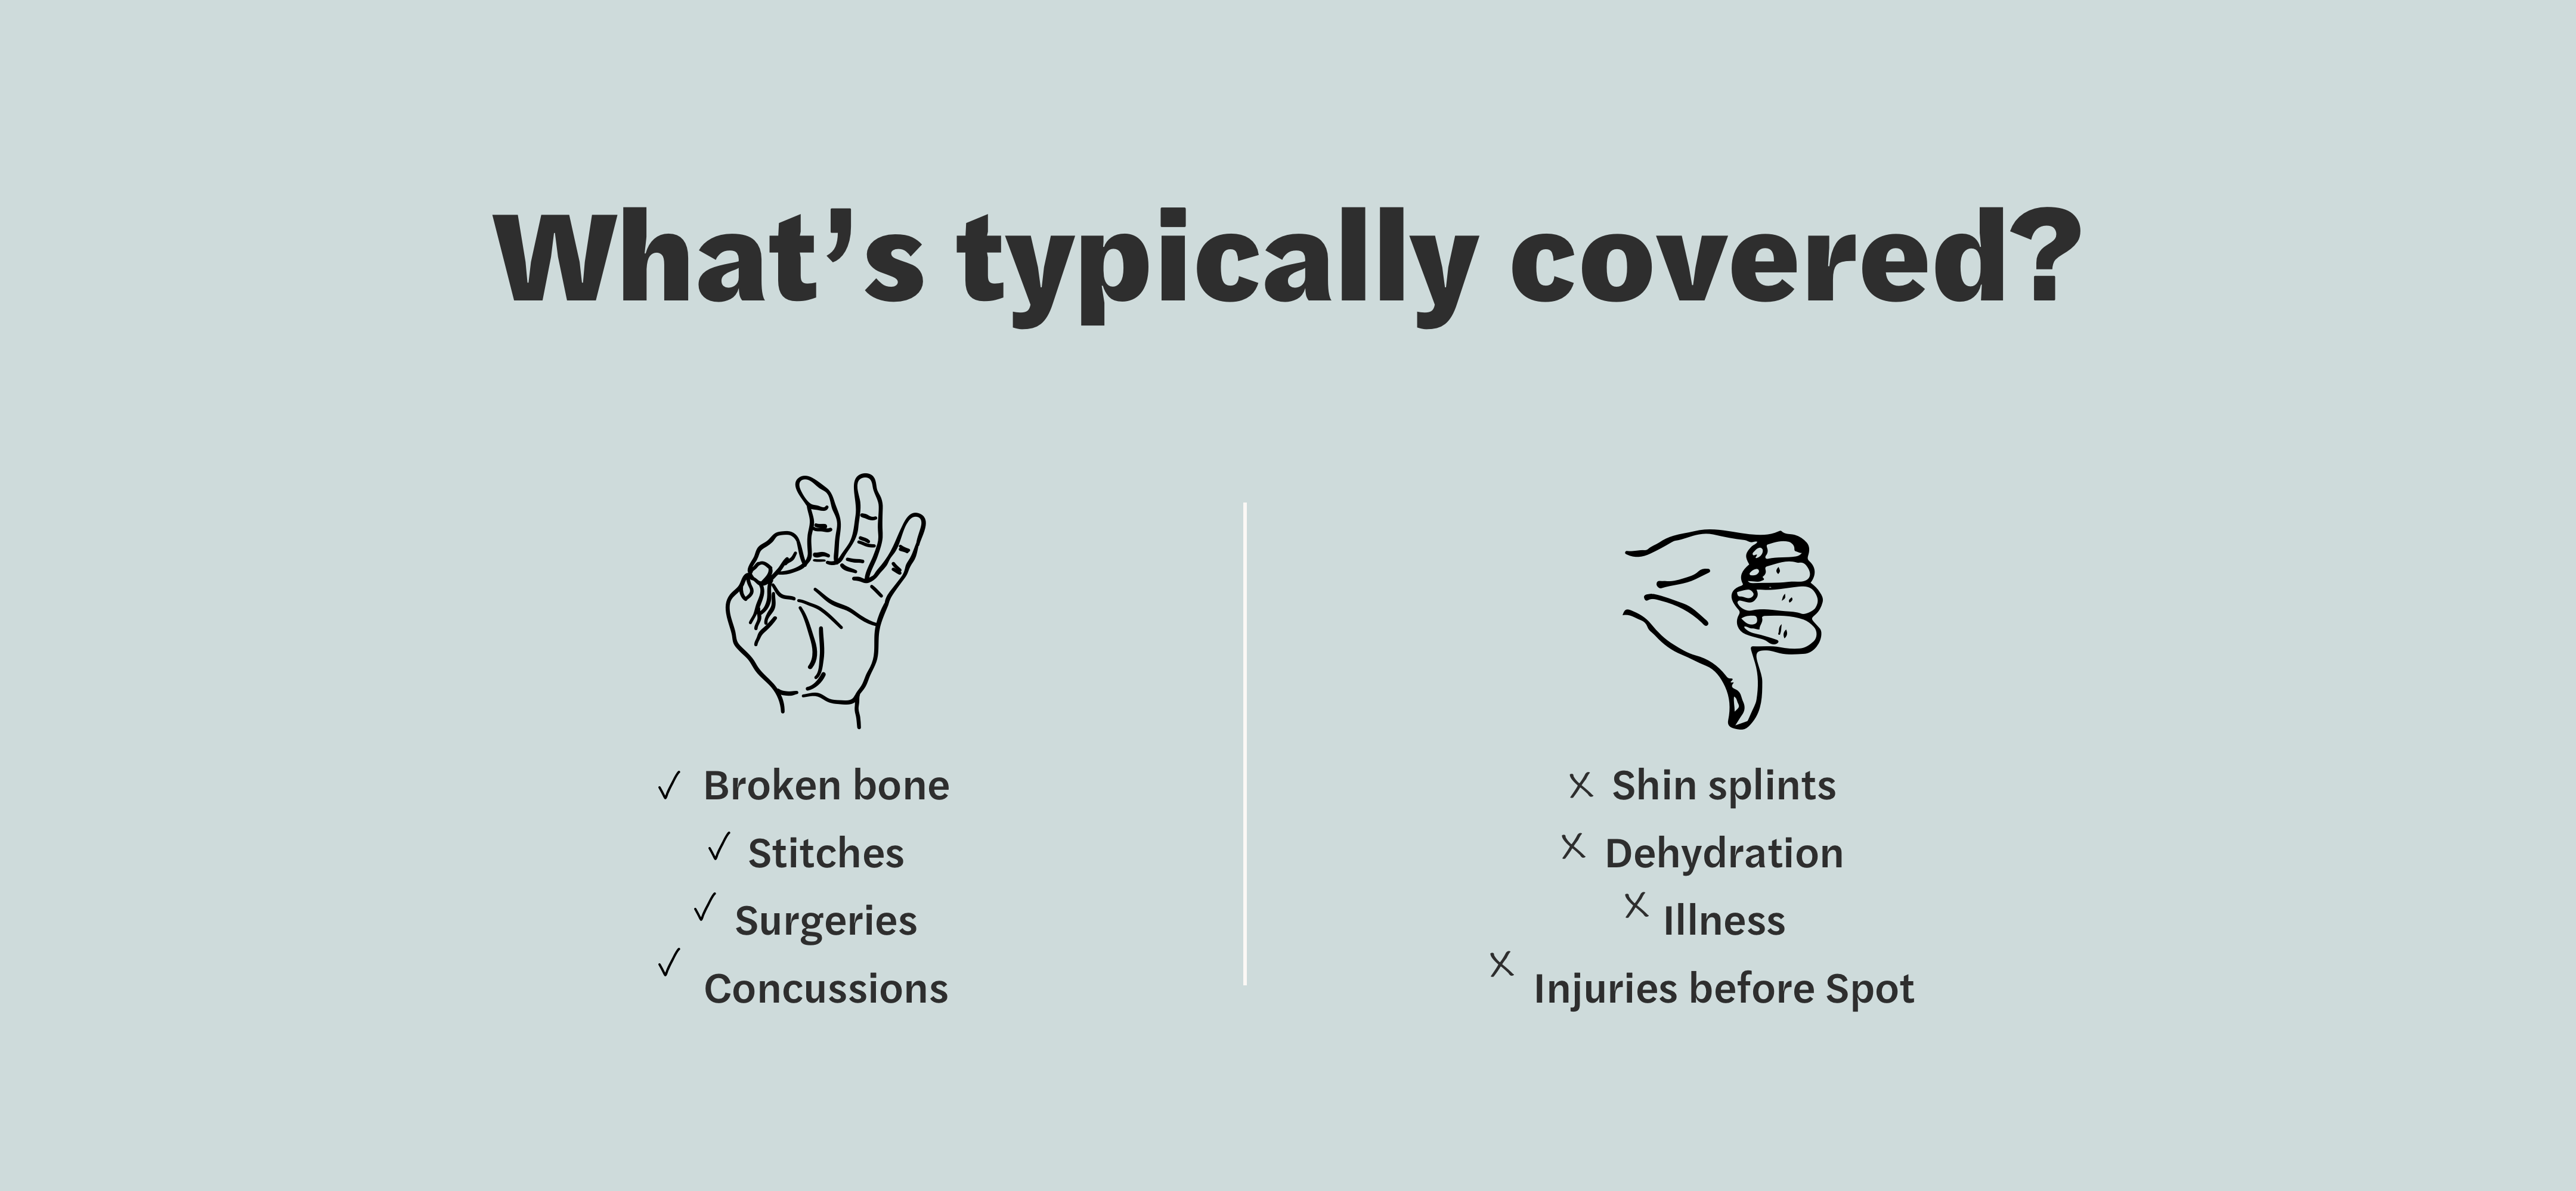 What's Covered? Covered: Broken bone, stitches, surgeries, concussion. Not Covered: Shin splints, dehydration, illness, 						injuries before Spot.